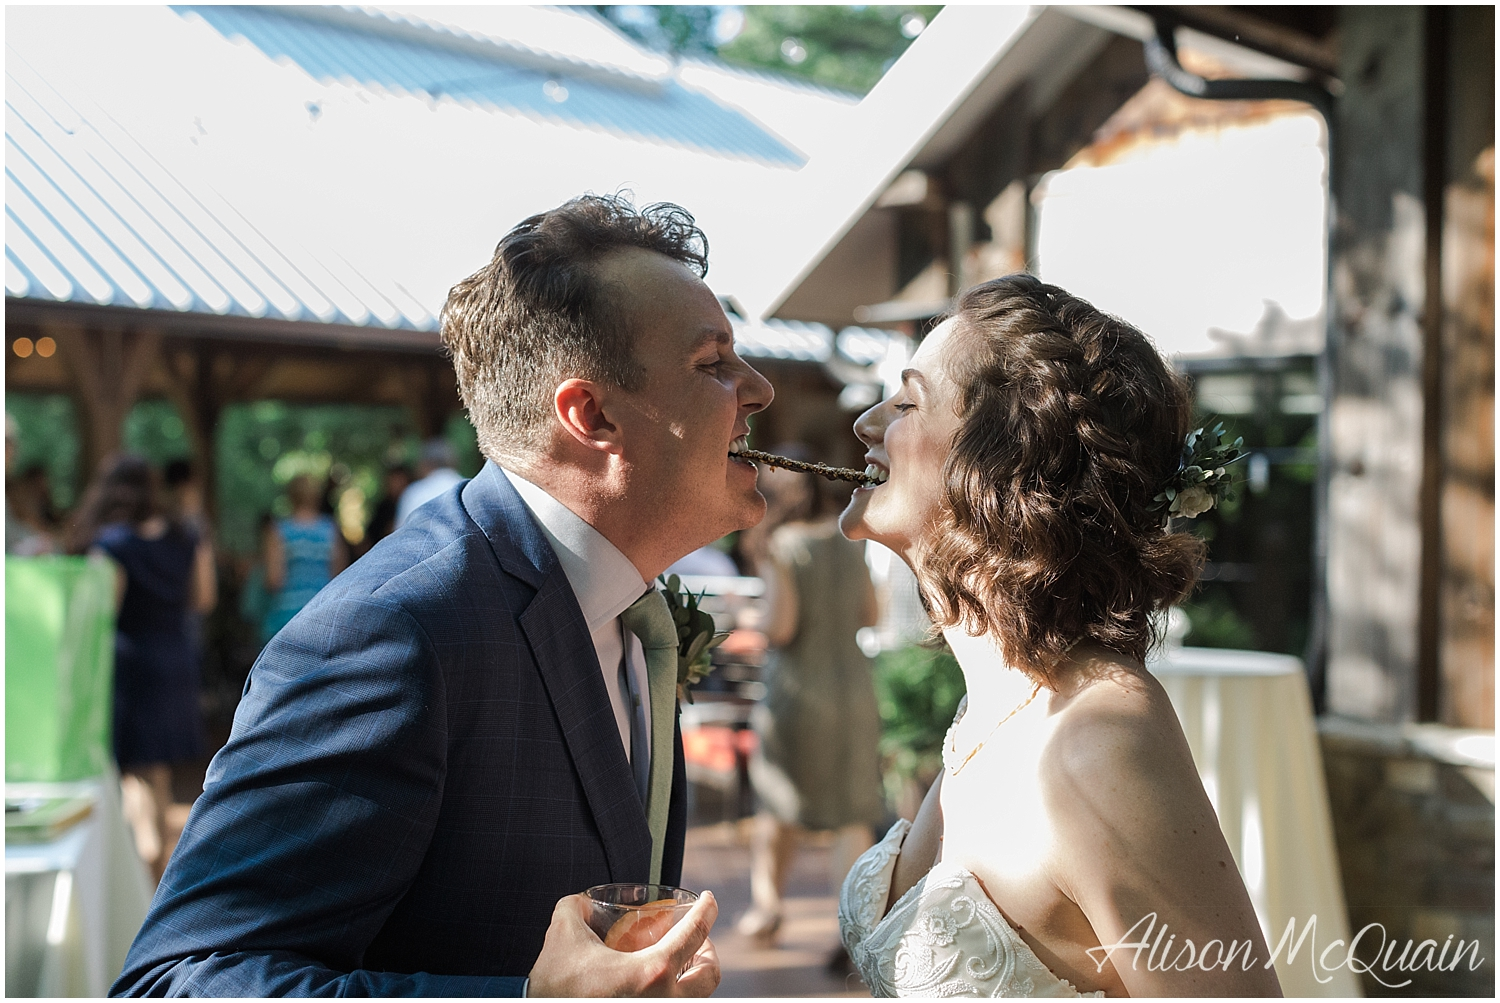 2018-05-23_0021LandC_wedding_dancingbearlodge_townsend_tn_amp.jpg